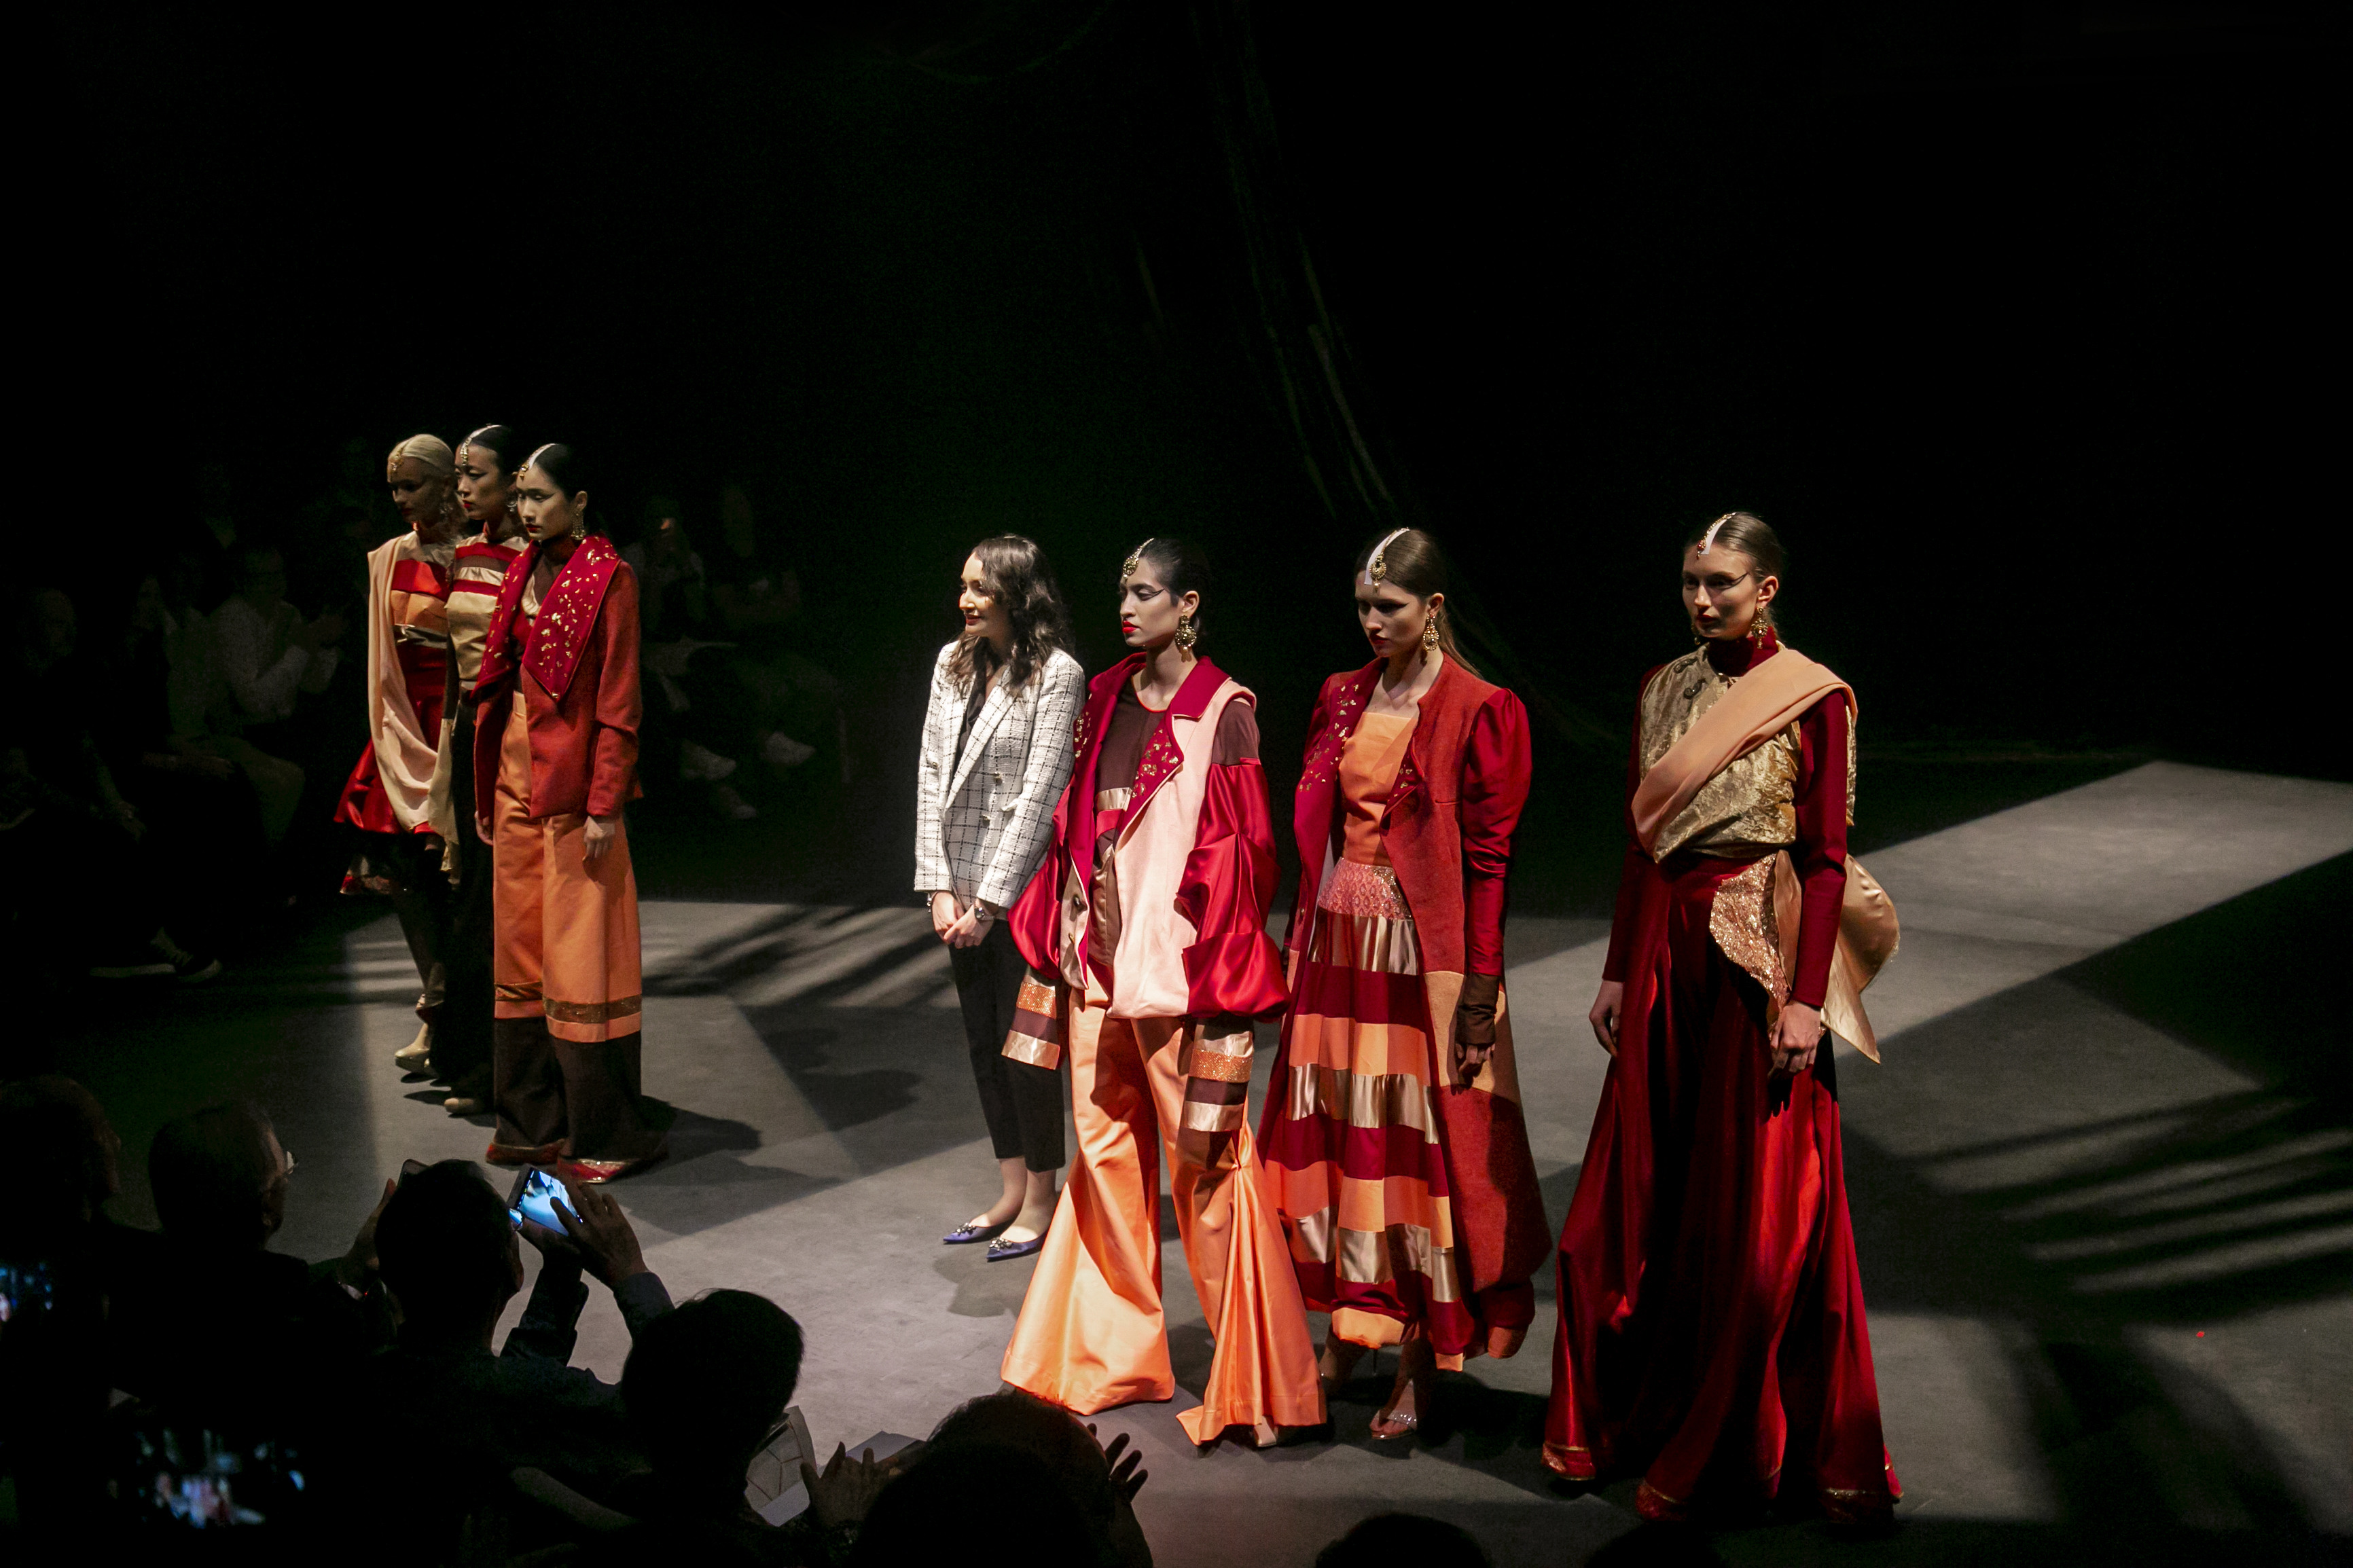 Meghna Sharma's collection was inspired by her trip to her hometown, India. Photo courtesy: MDIS